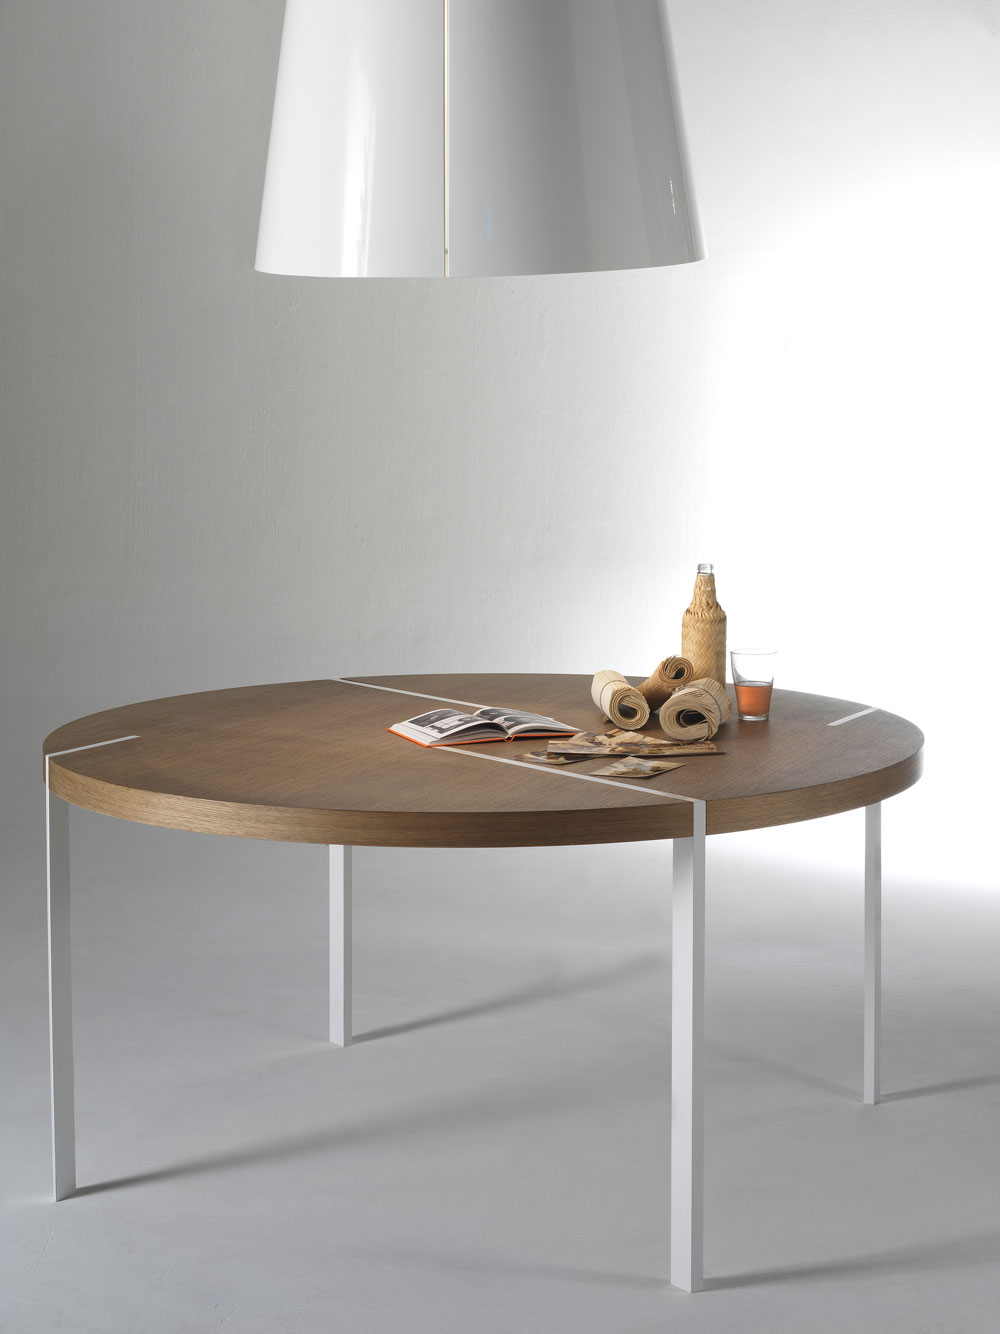 TRACES-TABLE-02